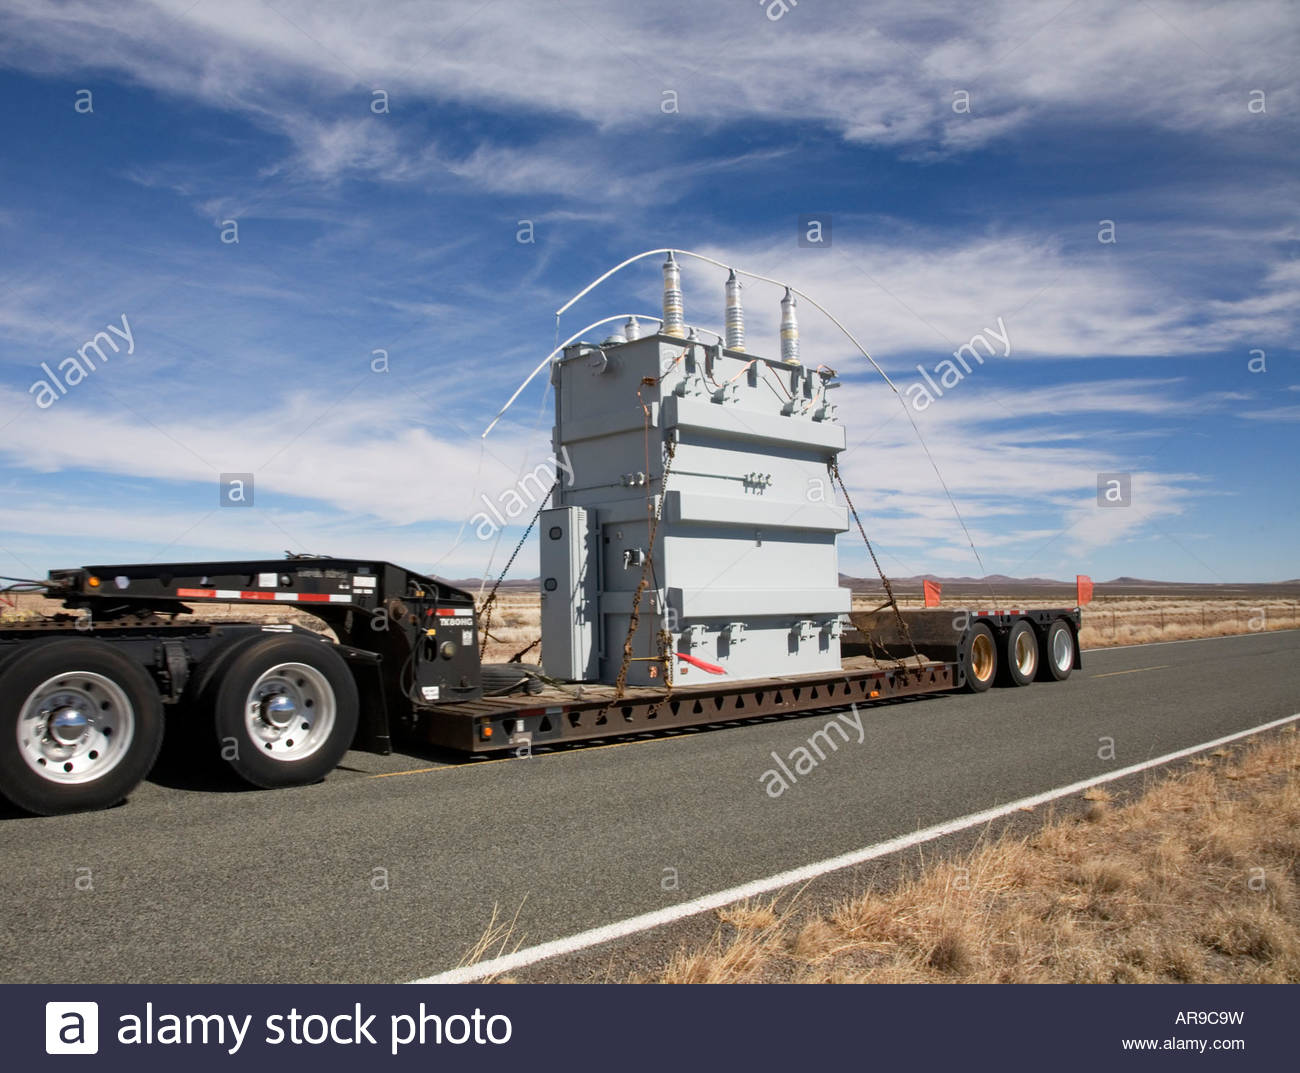 Truck hauling wide load oversize load over size load wideload electrical  transformer low boy lowboy trailer